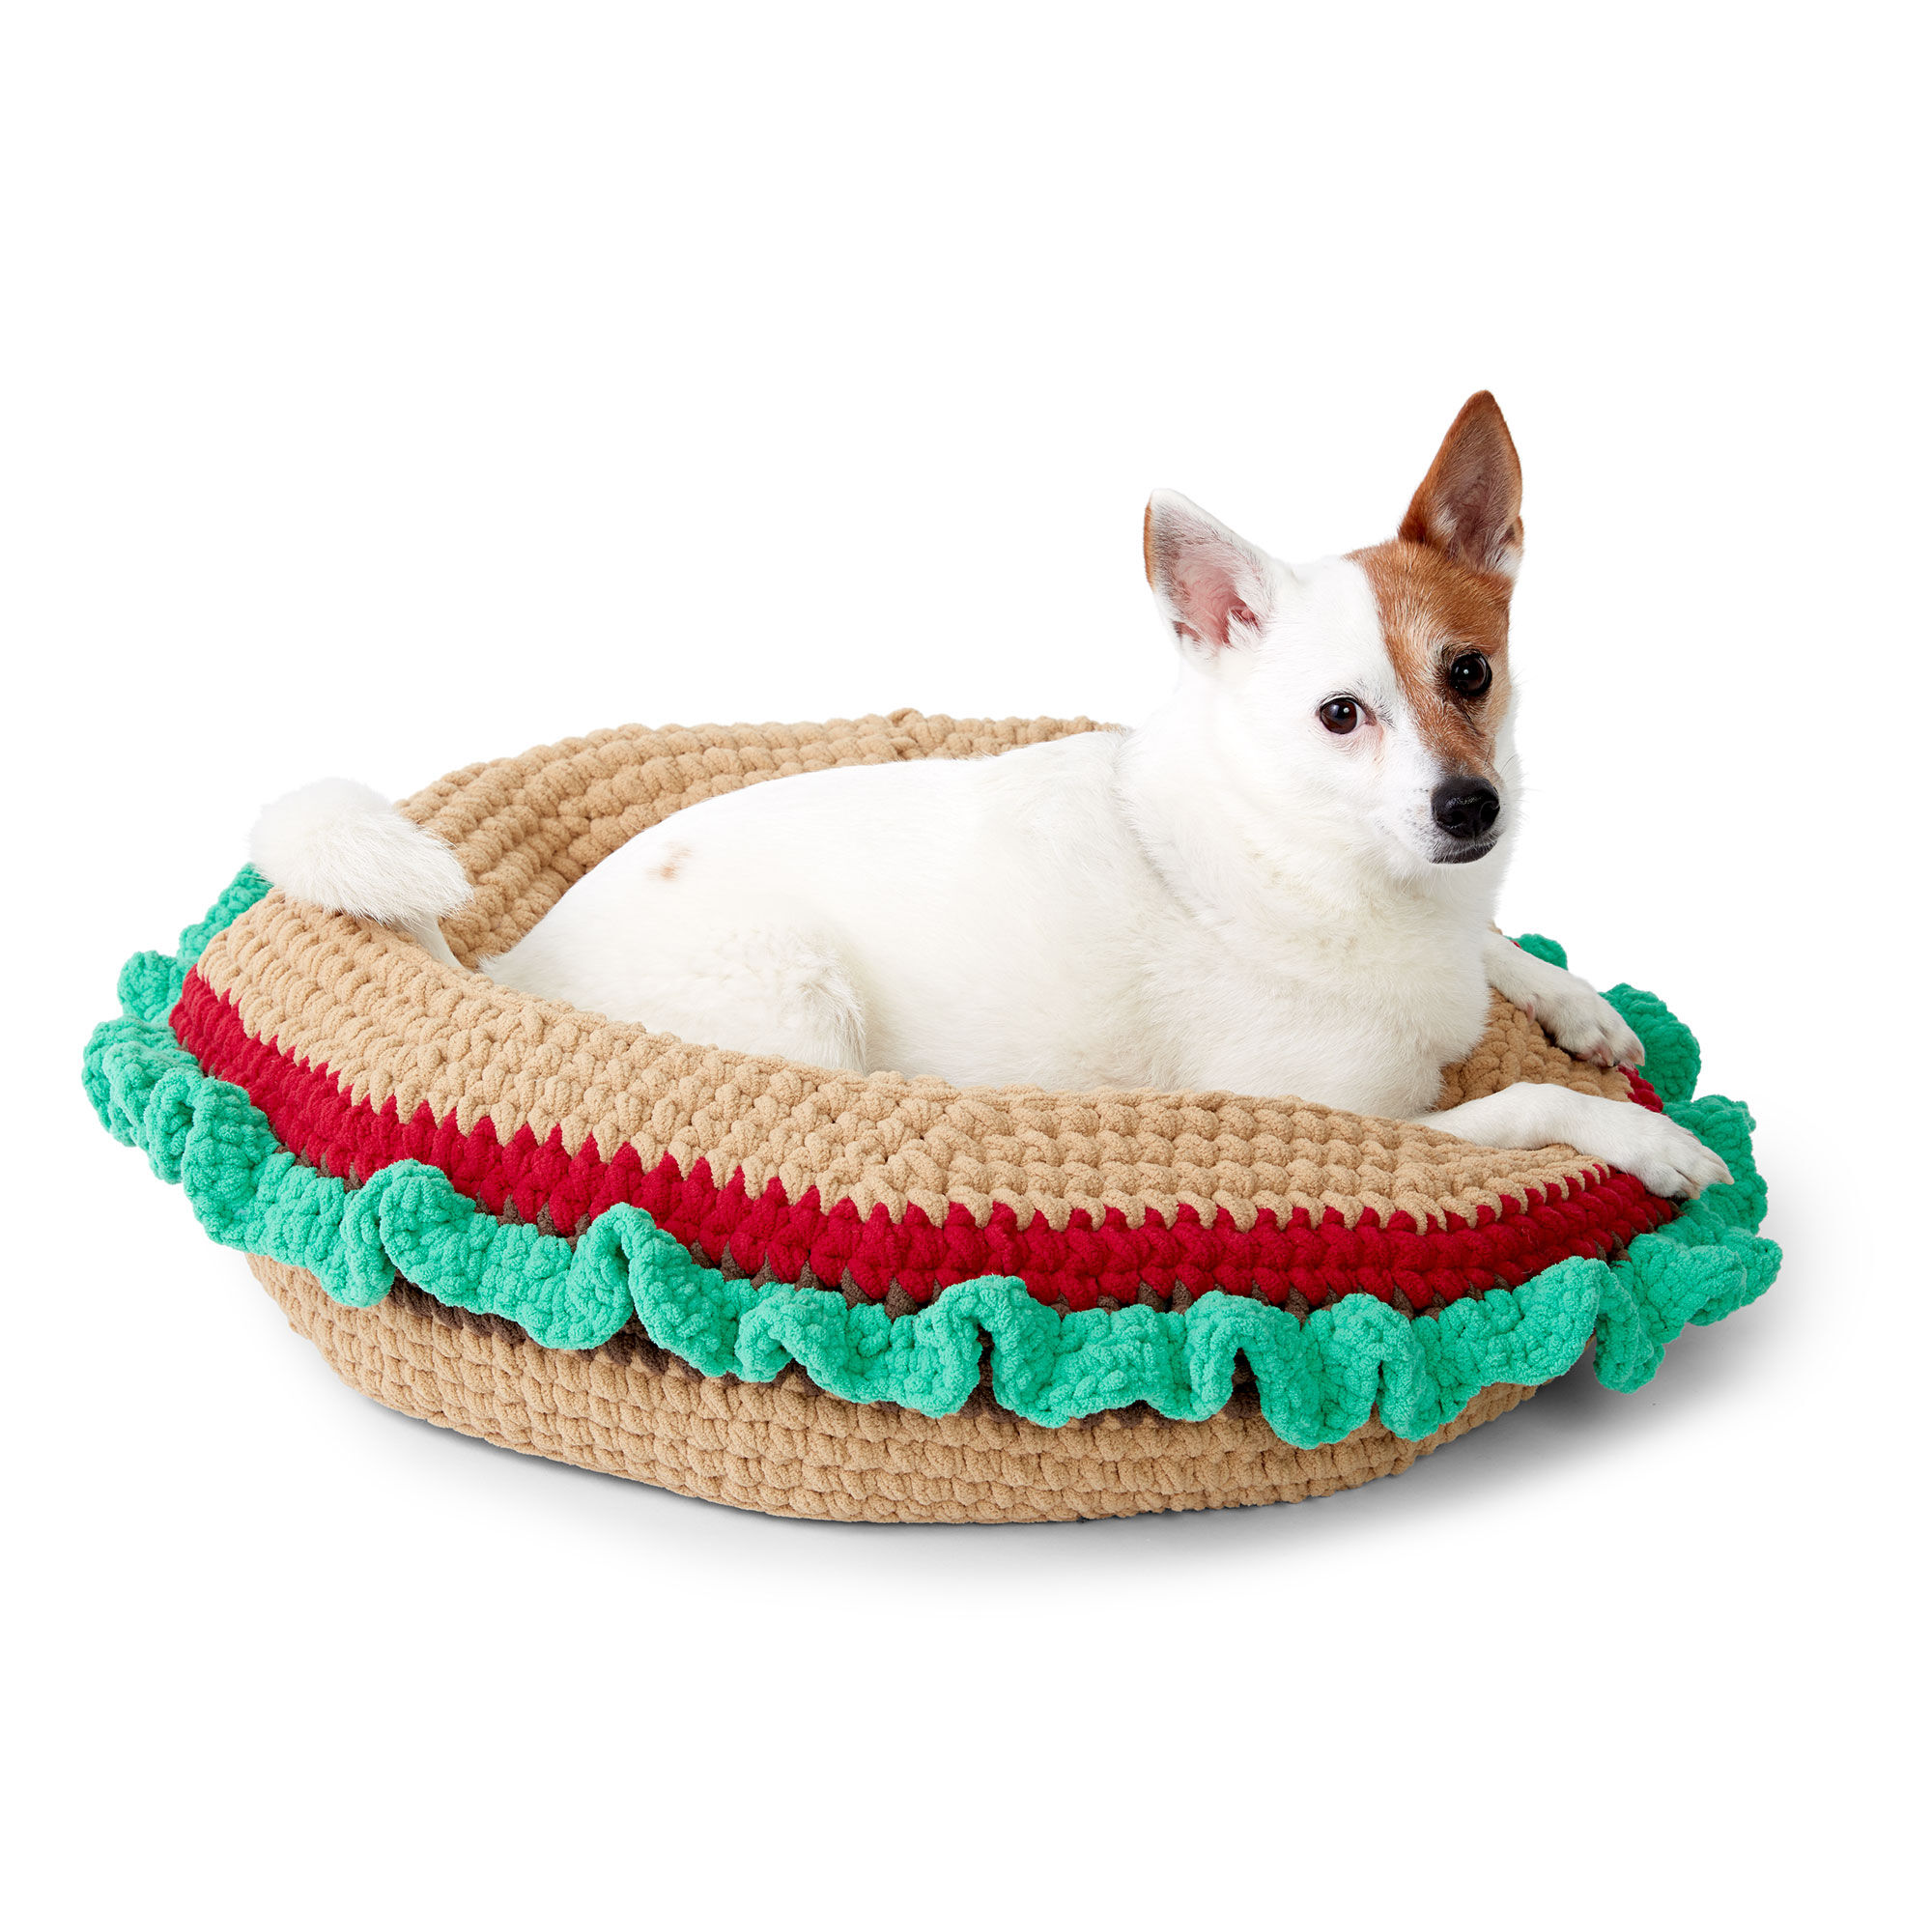 Bernat Crochet Burger Pet Bed Pattern Yarnspirations